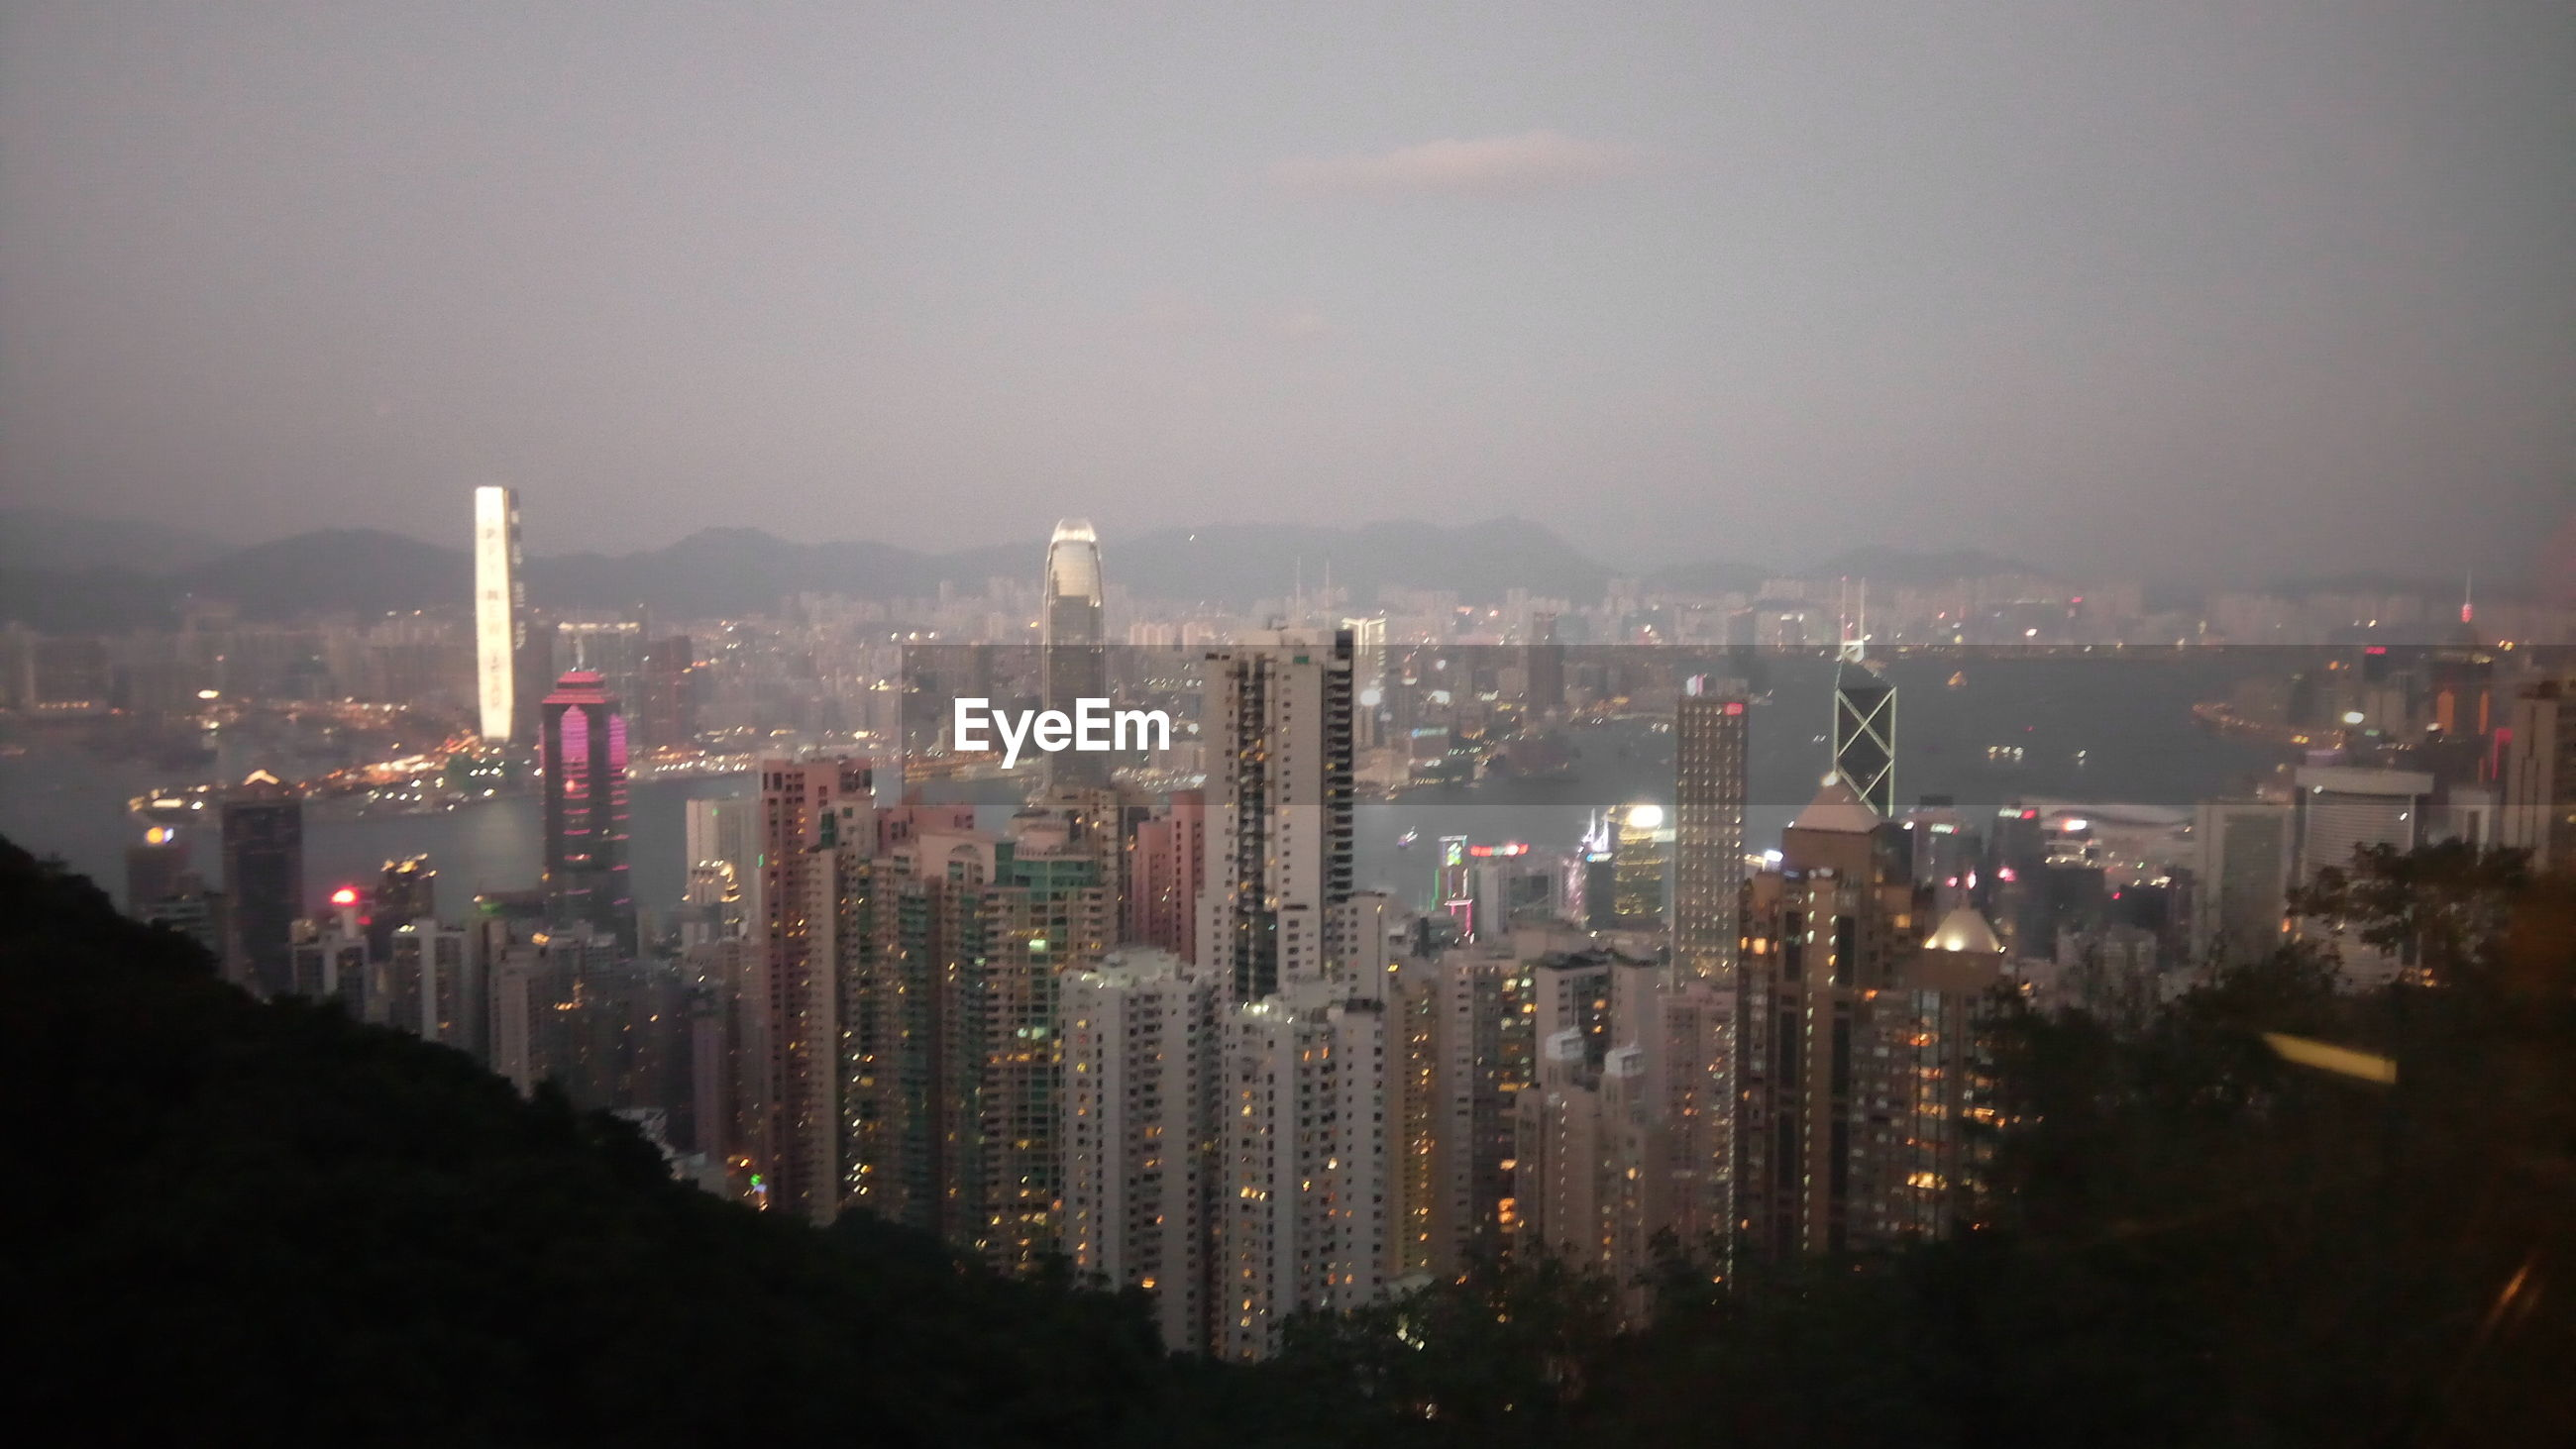 cityscape, city, architecture, skyscraper, illuminated, building exterior, crowded, night, modern, growth, built structure, sky, outdoors